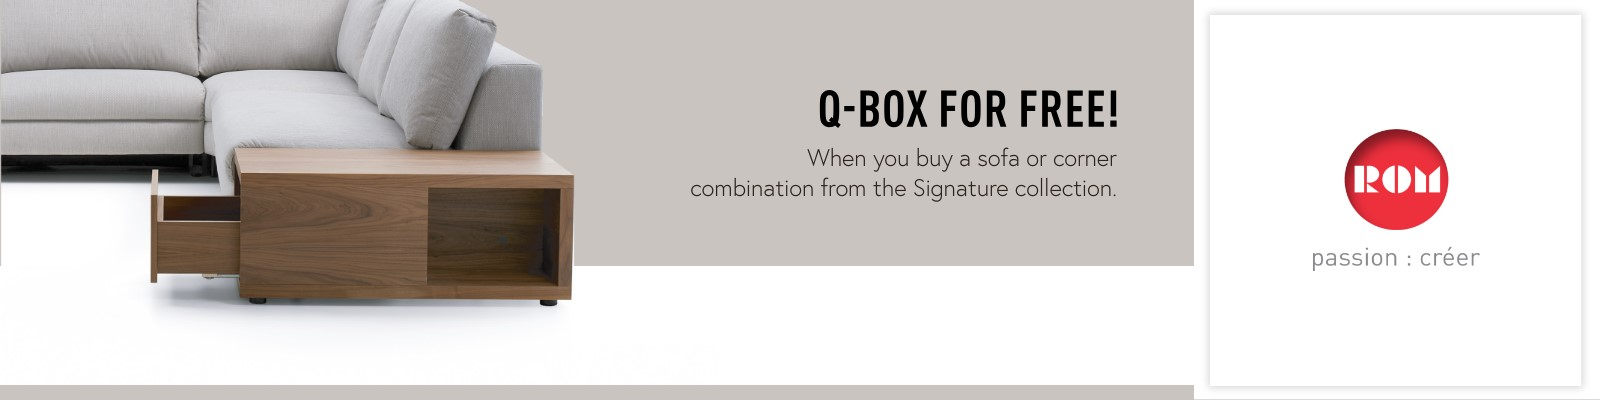 ROM qbox brand page